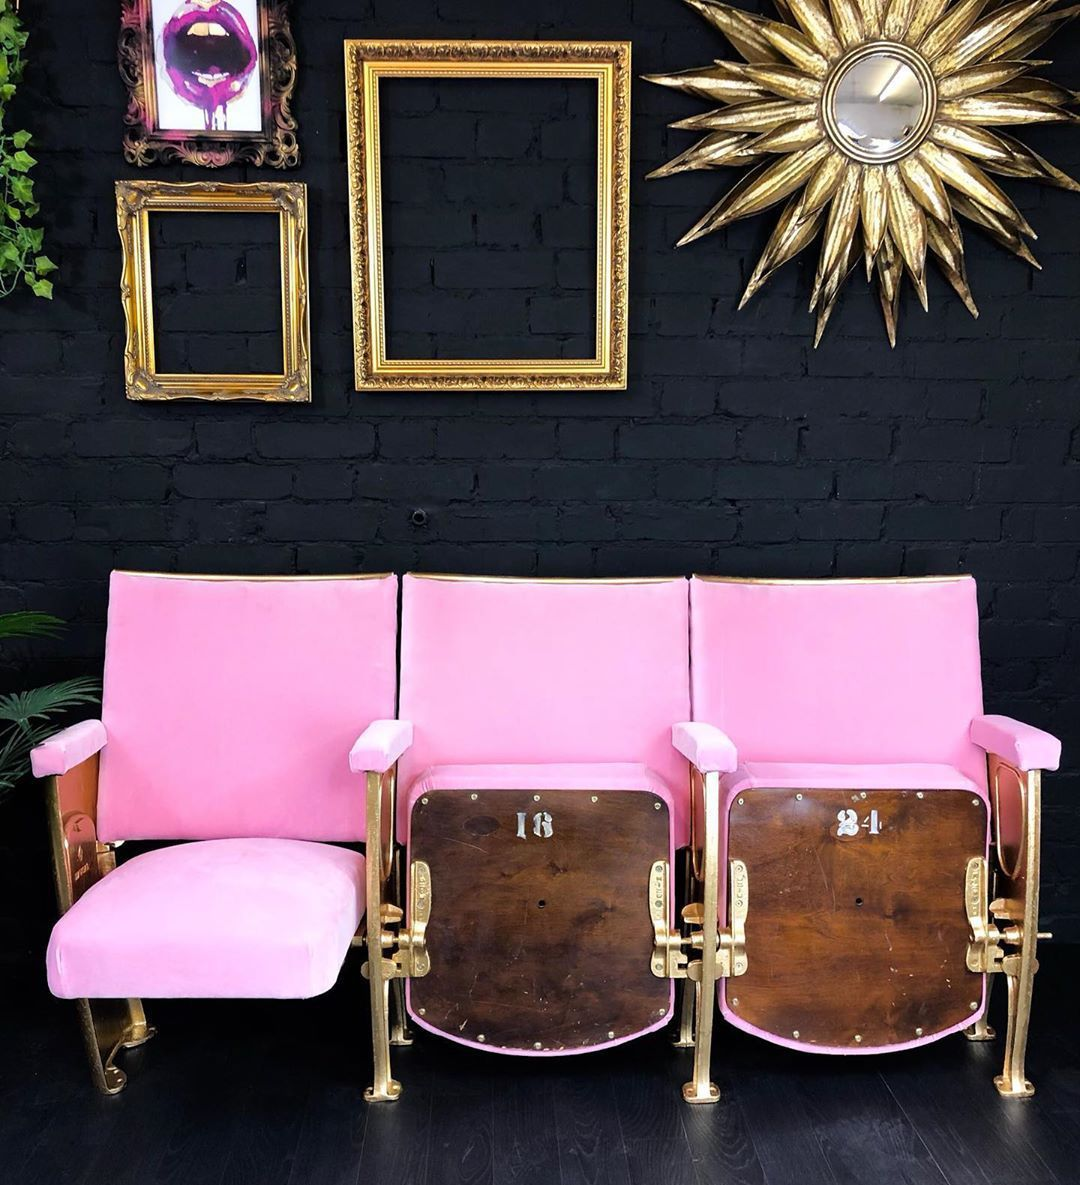 Theatre /stadium seats upholstered in pink!! Lovely #mediarooms Theatre /stadium seats upholstered in pink!! Lovely #mediarooms